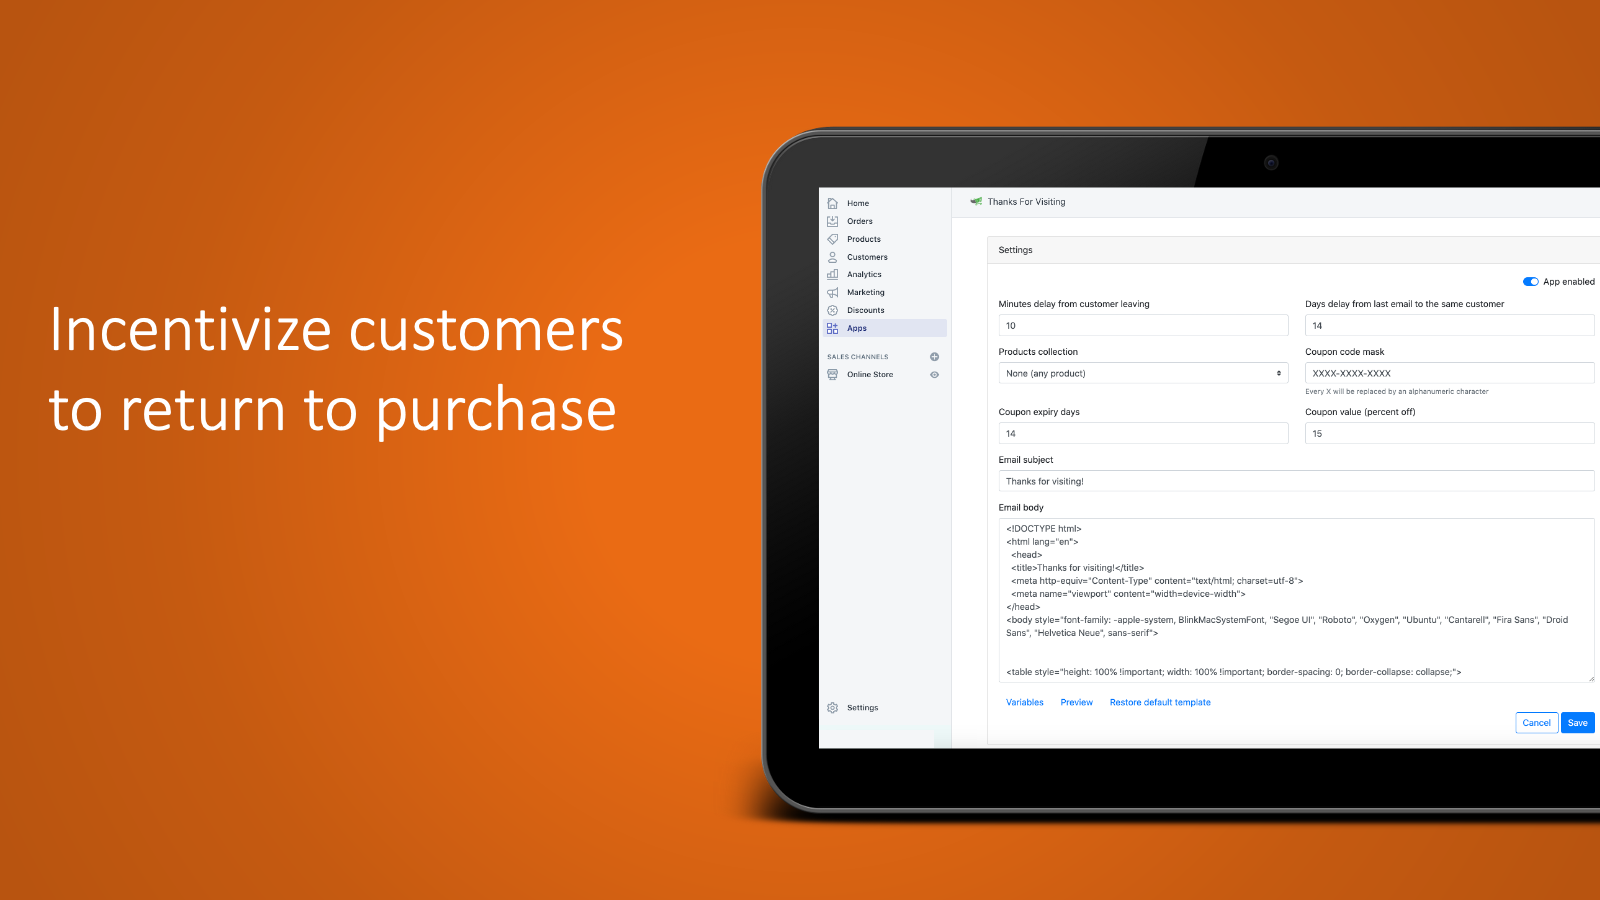 Incentivize customers to return to purchase